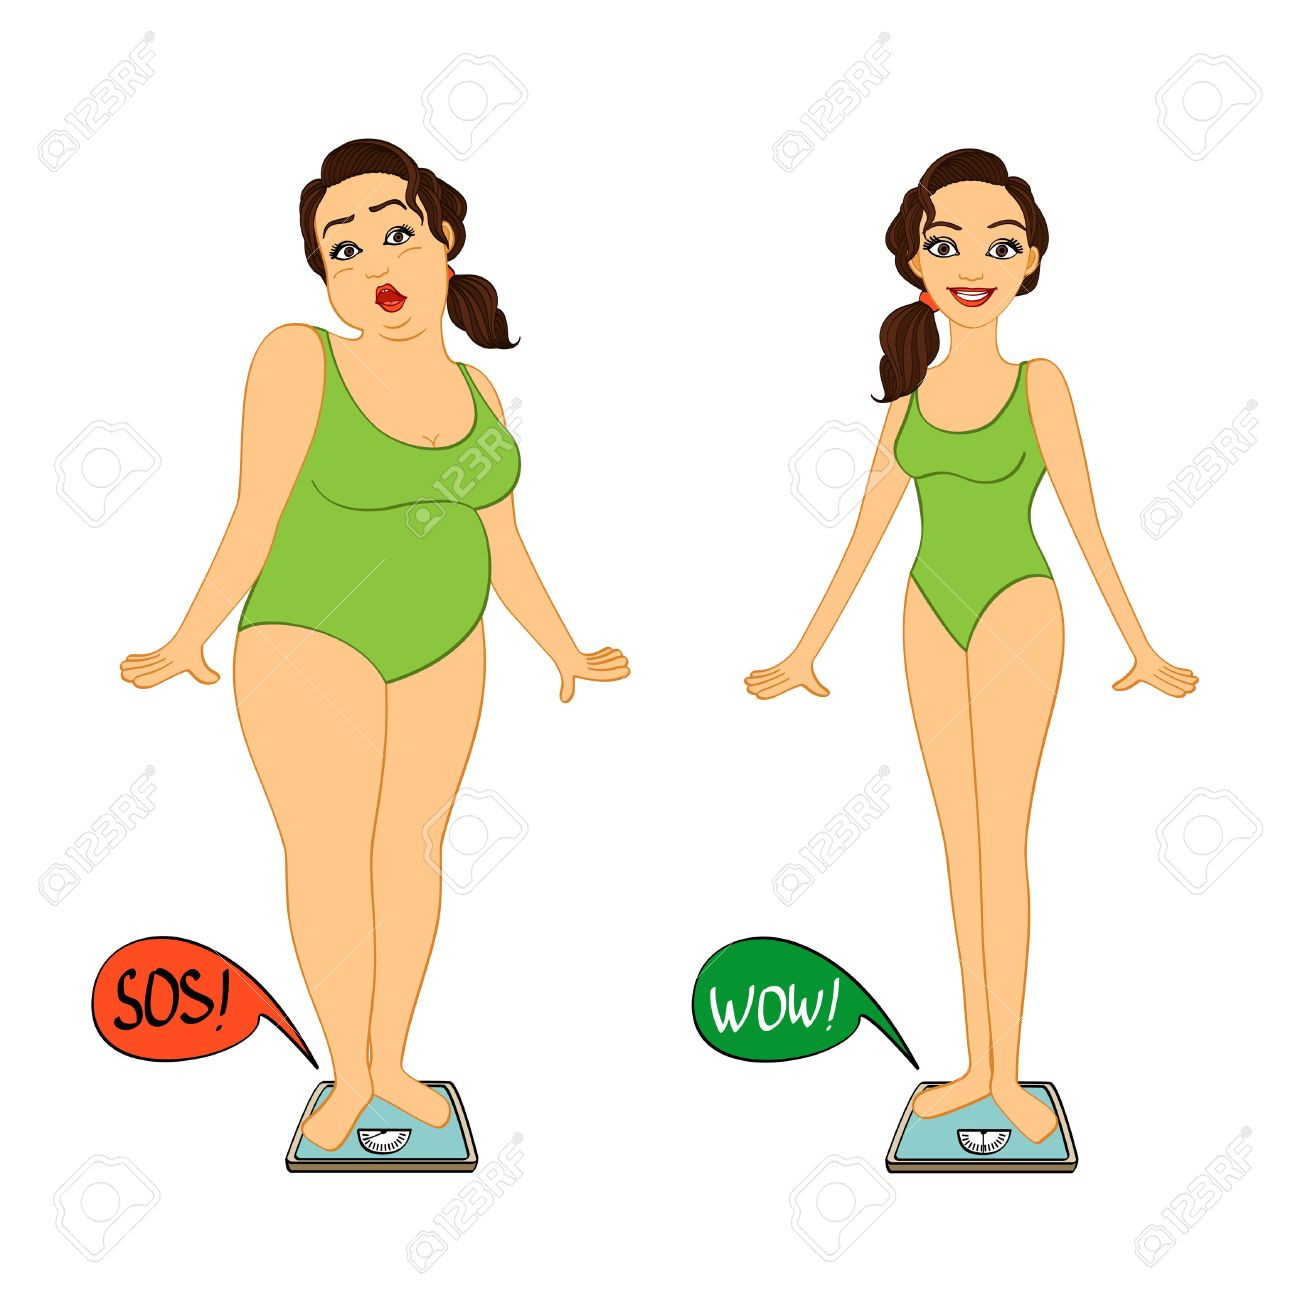 Fat and slim woman on weights scales, diet and exercises progress isolated illustration - 24964955